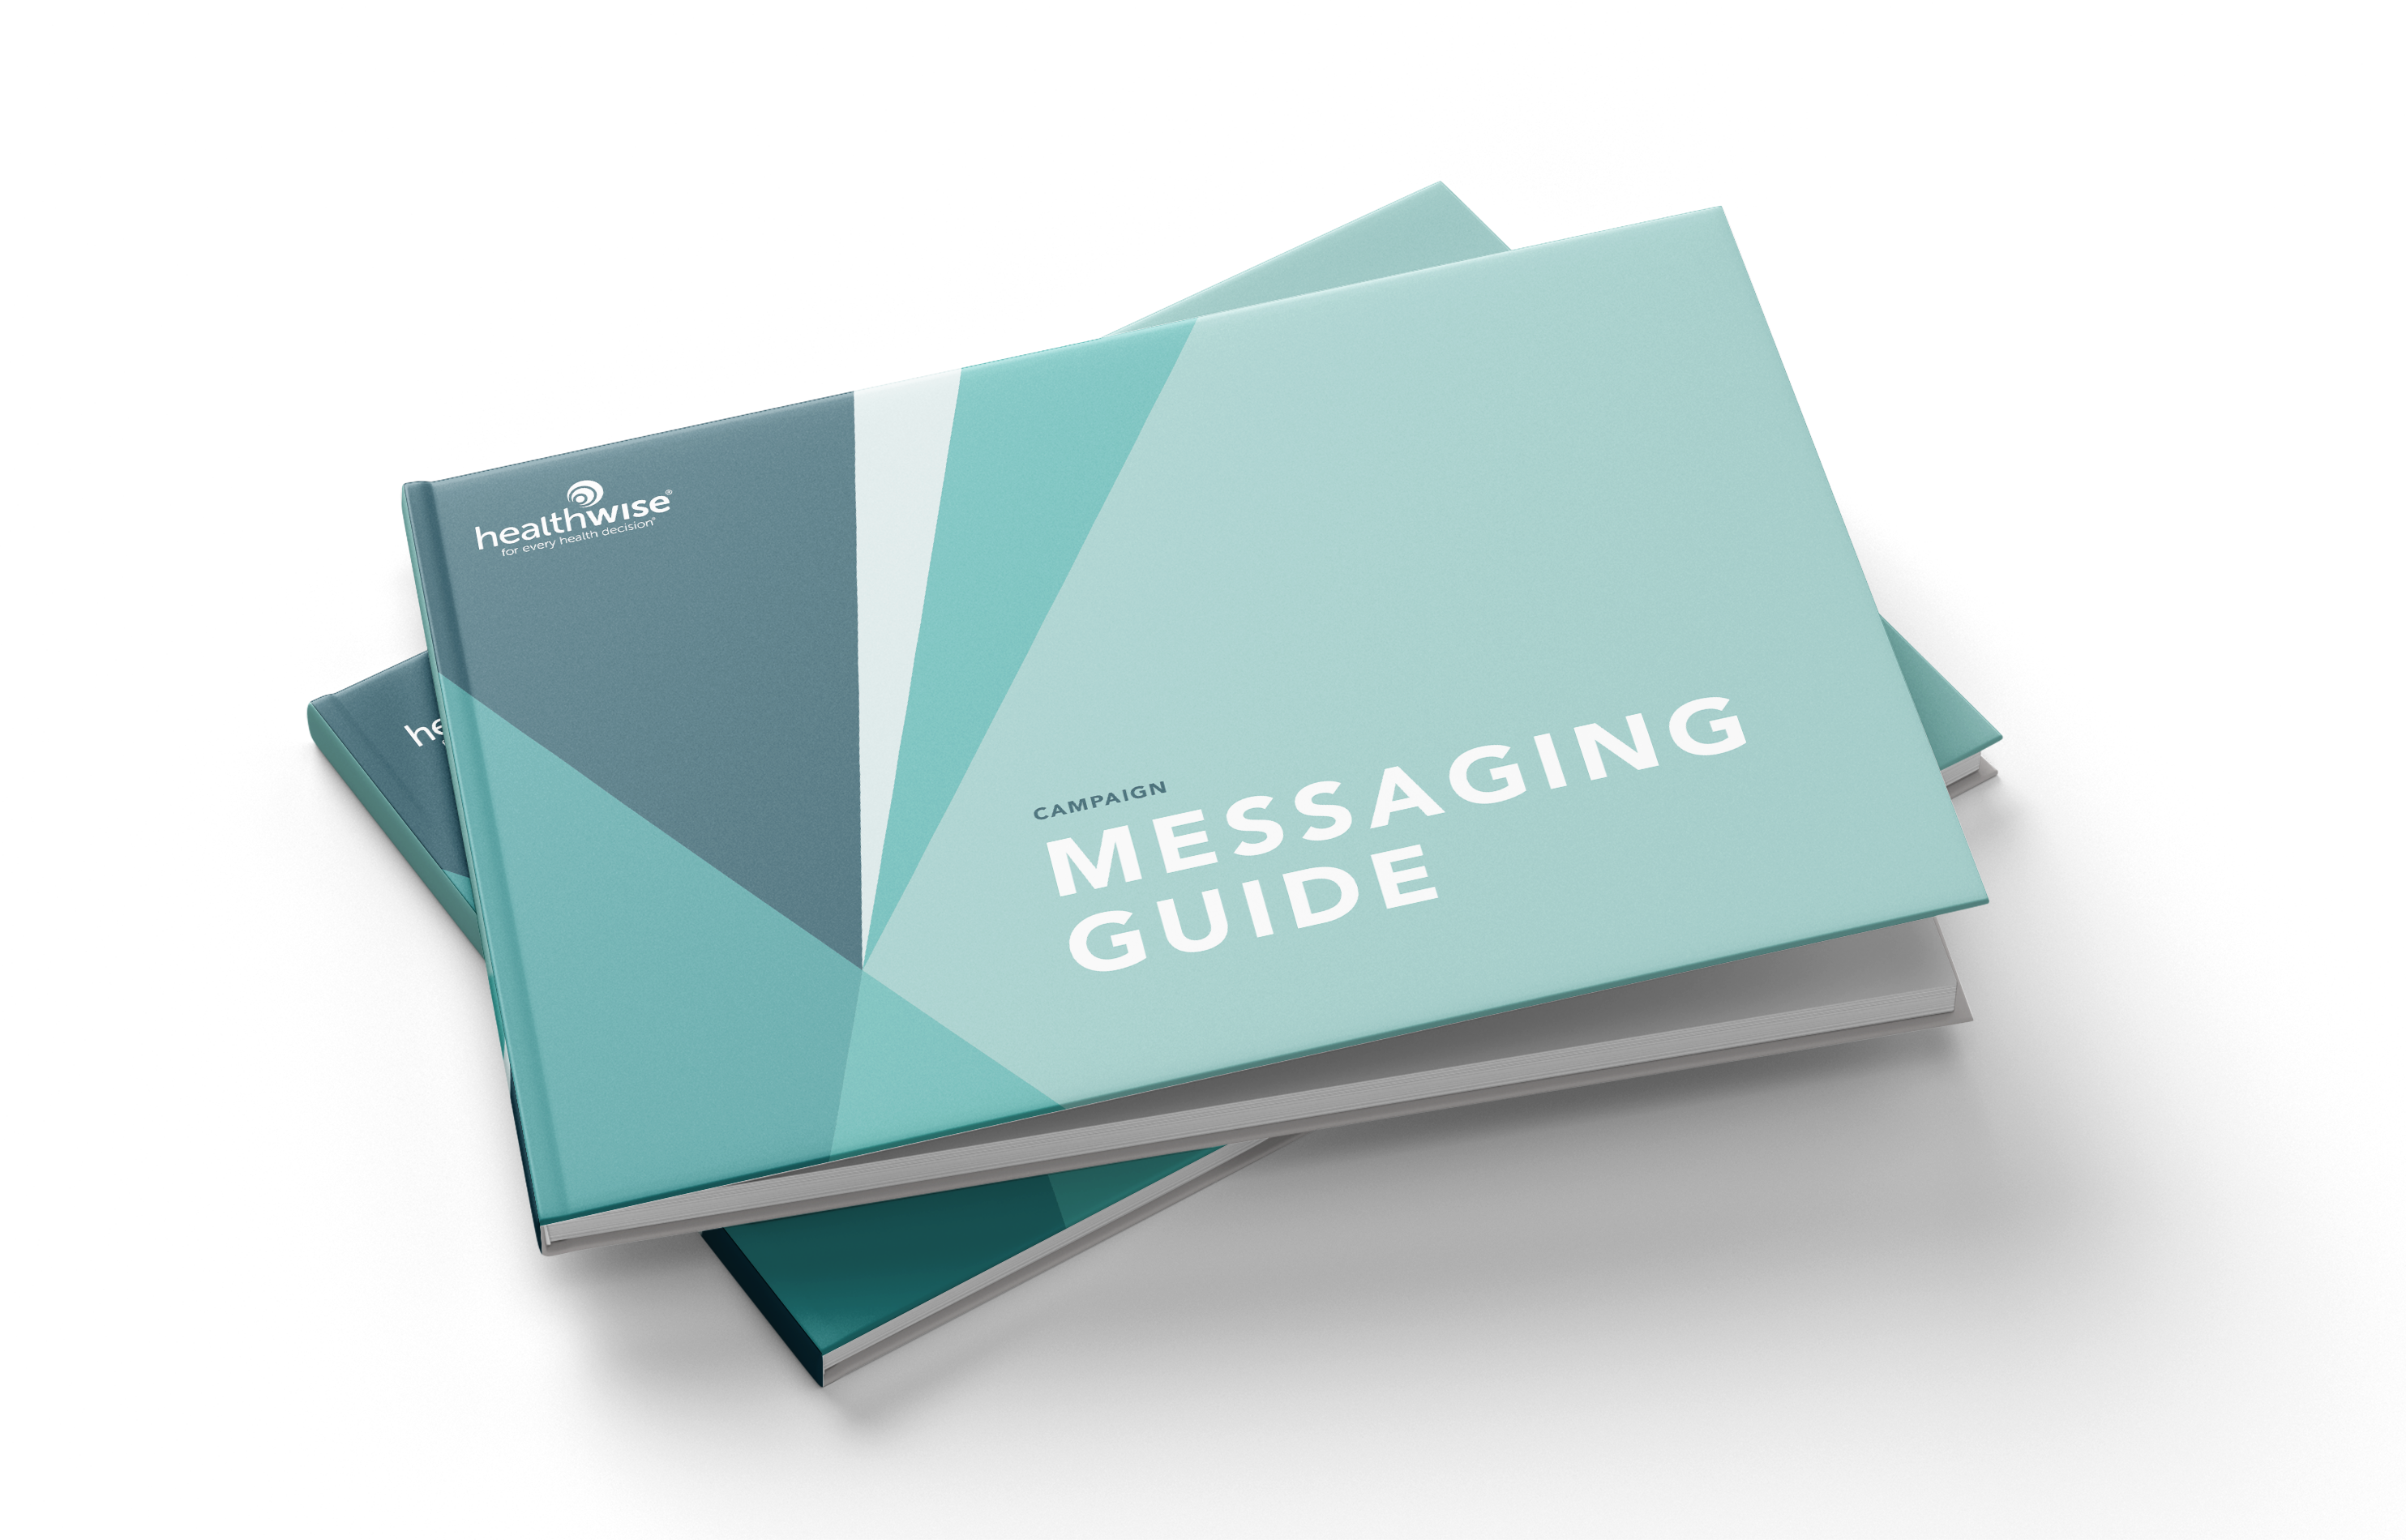 Healthwise Messaging Guide 2